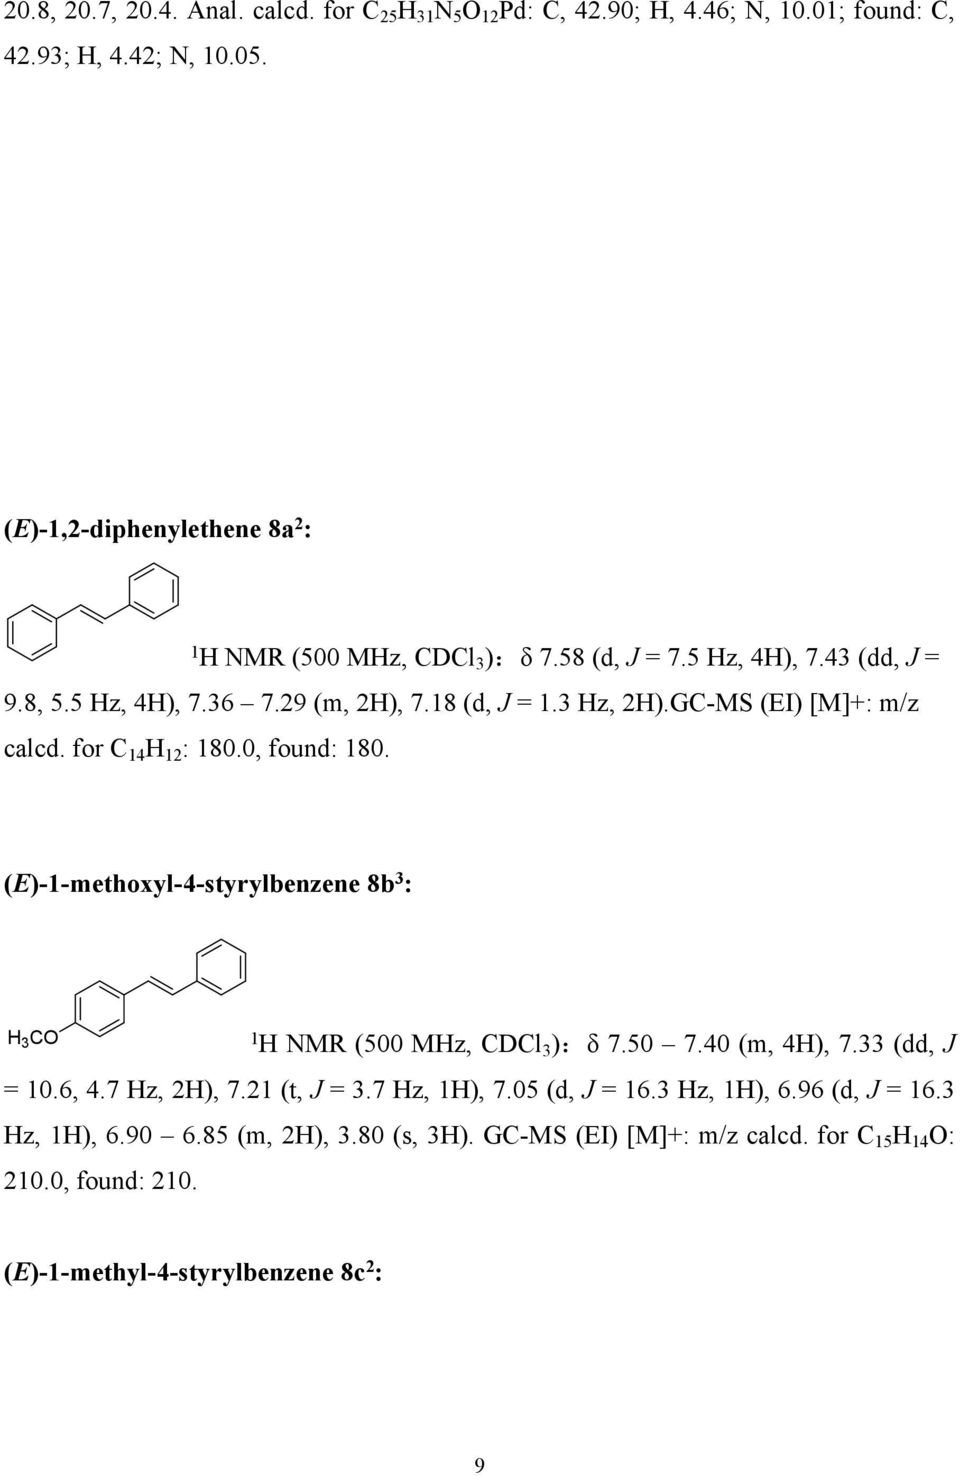 GC-MS (EI) [M]+: m/z calcd. for C 4 H 2 : 80.0, found: 80. (E)--methoxyl-4-styrylbenzene 8b 3 : H 3 C H MR (500 MHz, CDCl 3 ):δ 7.50 7.40 (m, 4H), 7.